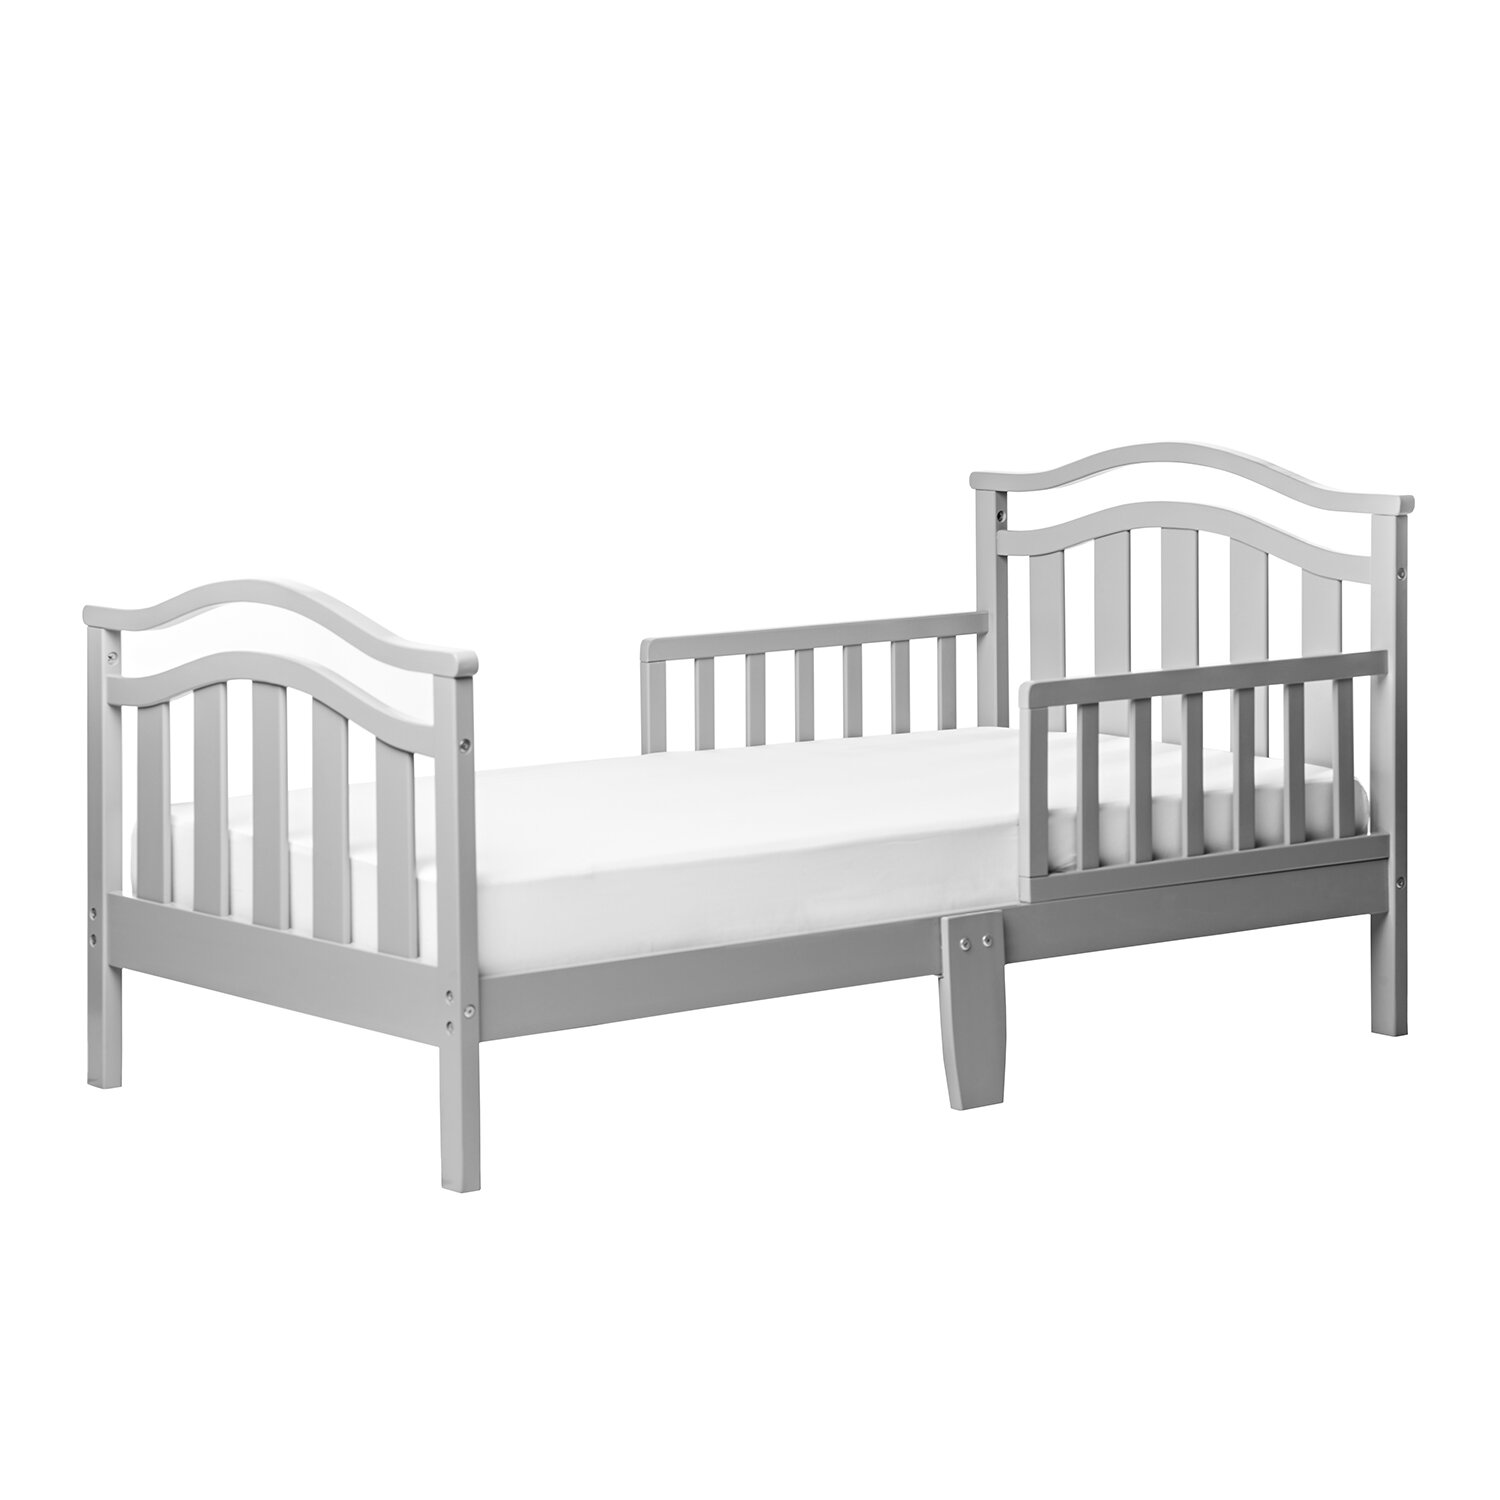 Toddler Bed Side Rail  To  Inches Long